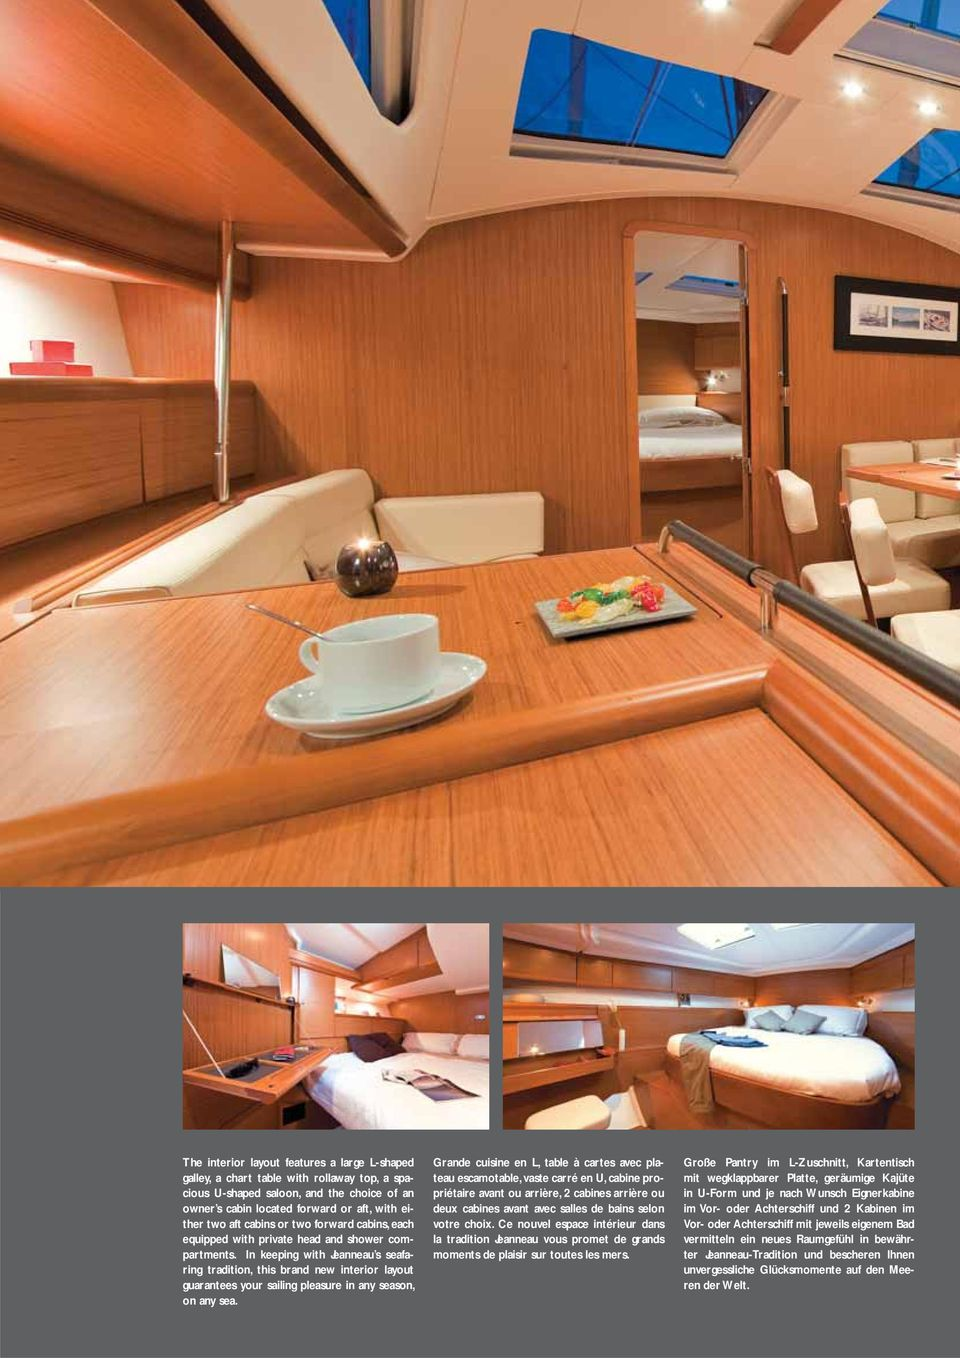 In keeping with Jeanneau s seafaring tradition, this brand new interior layout guarantees your sailing pleasure in any season, on any sea.